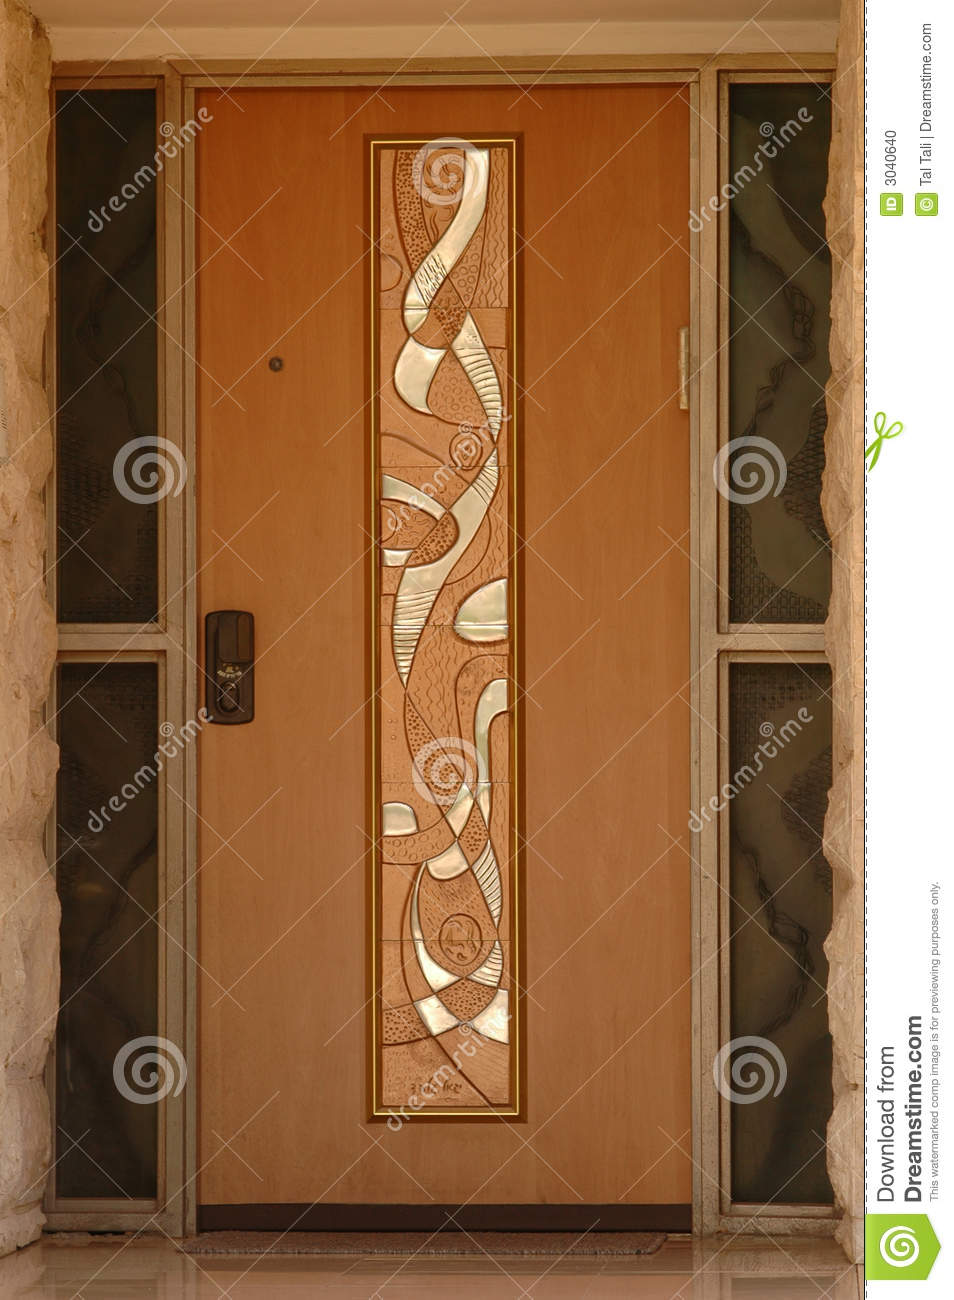 Classic Door Stock Photo - Image: 3040640